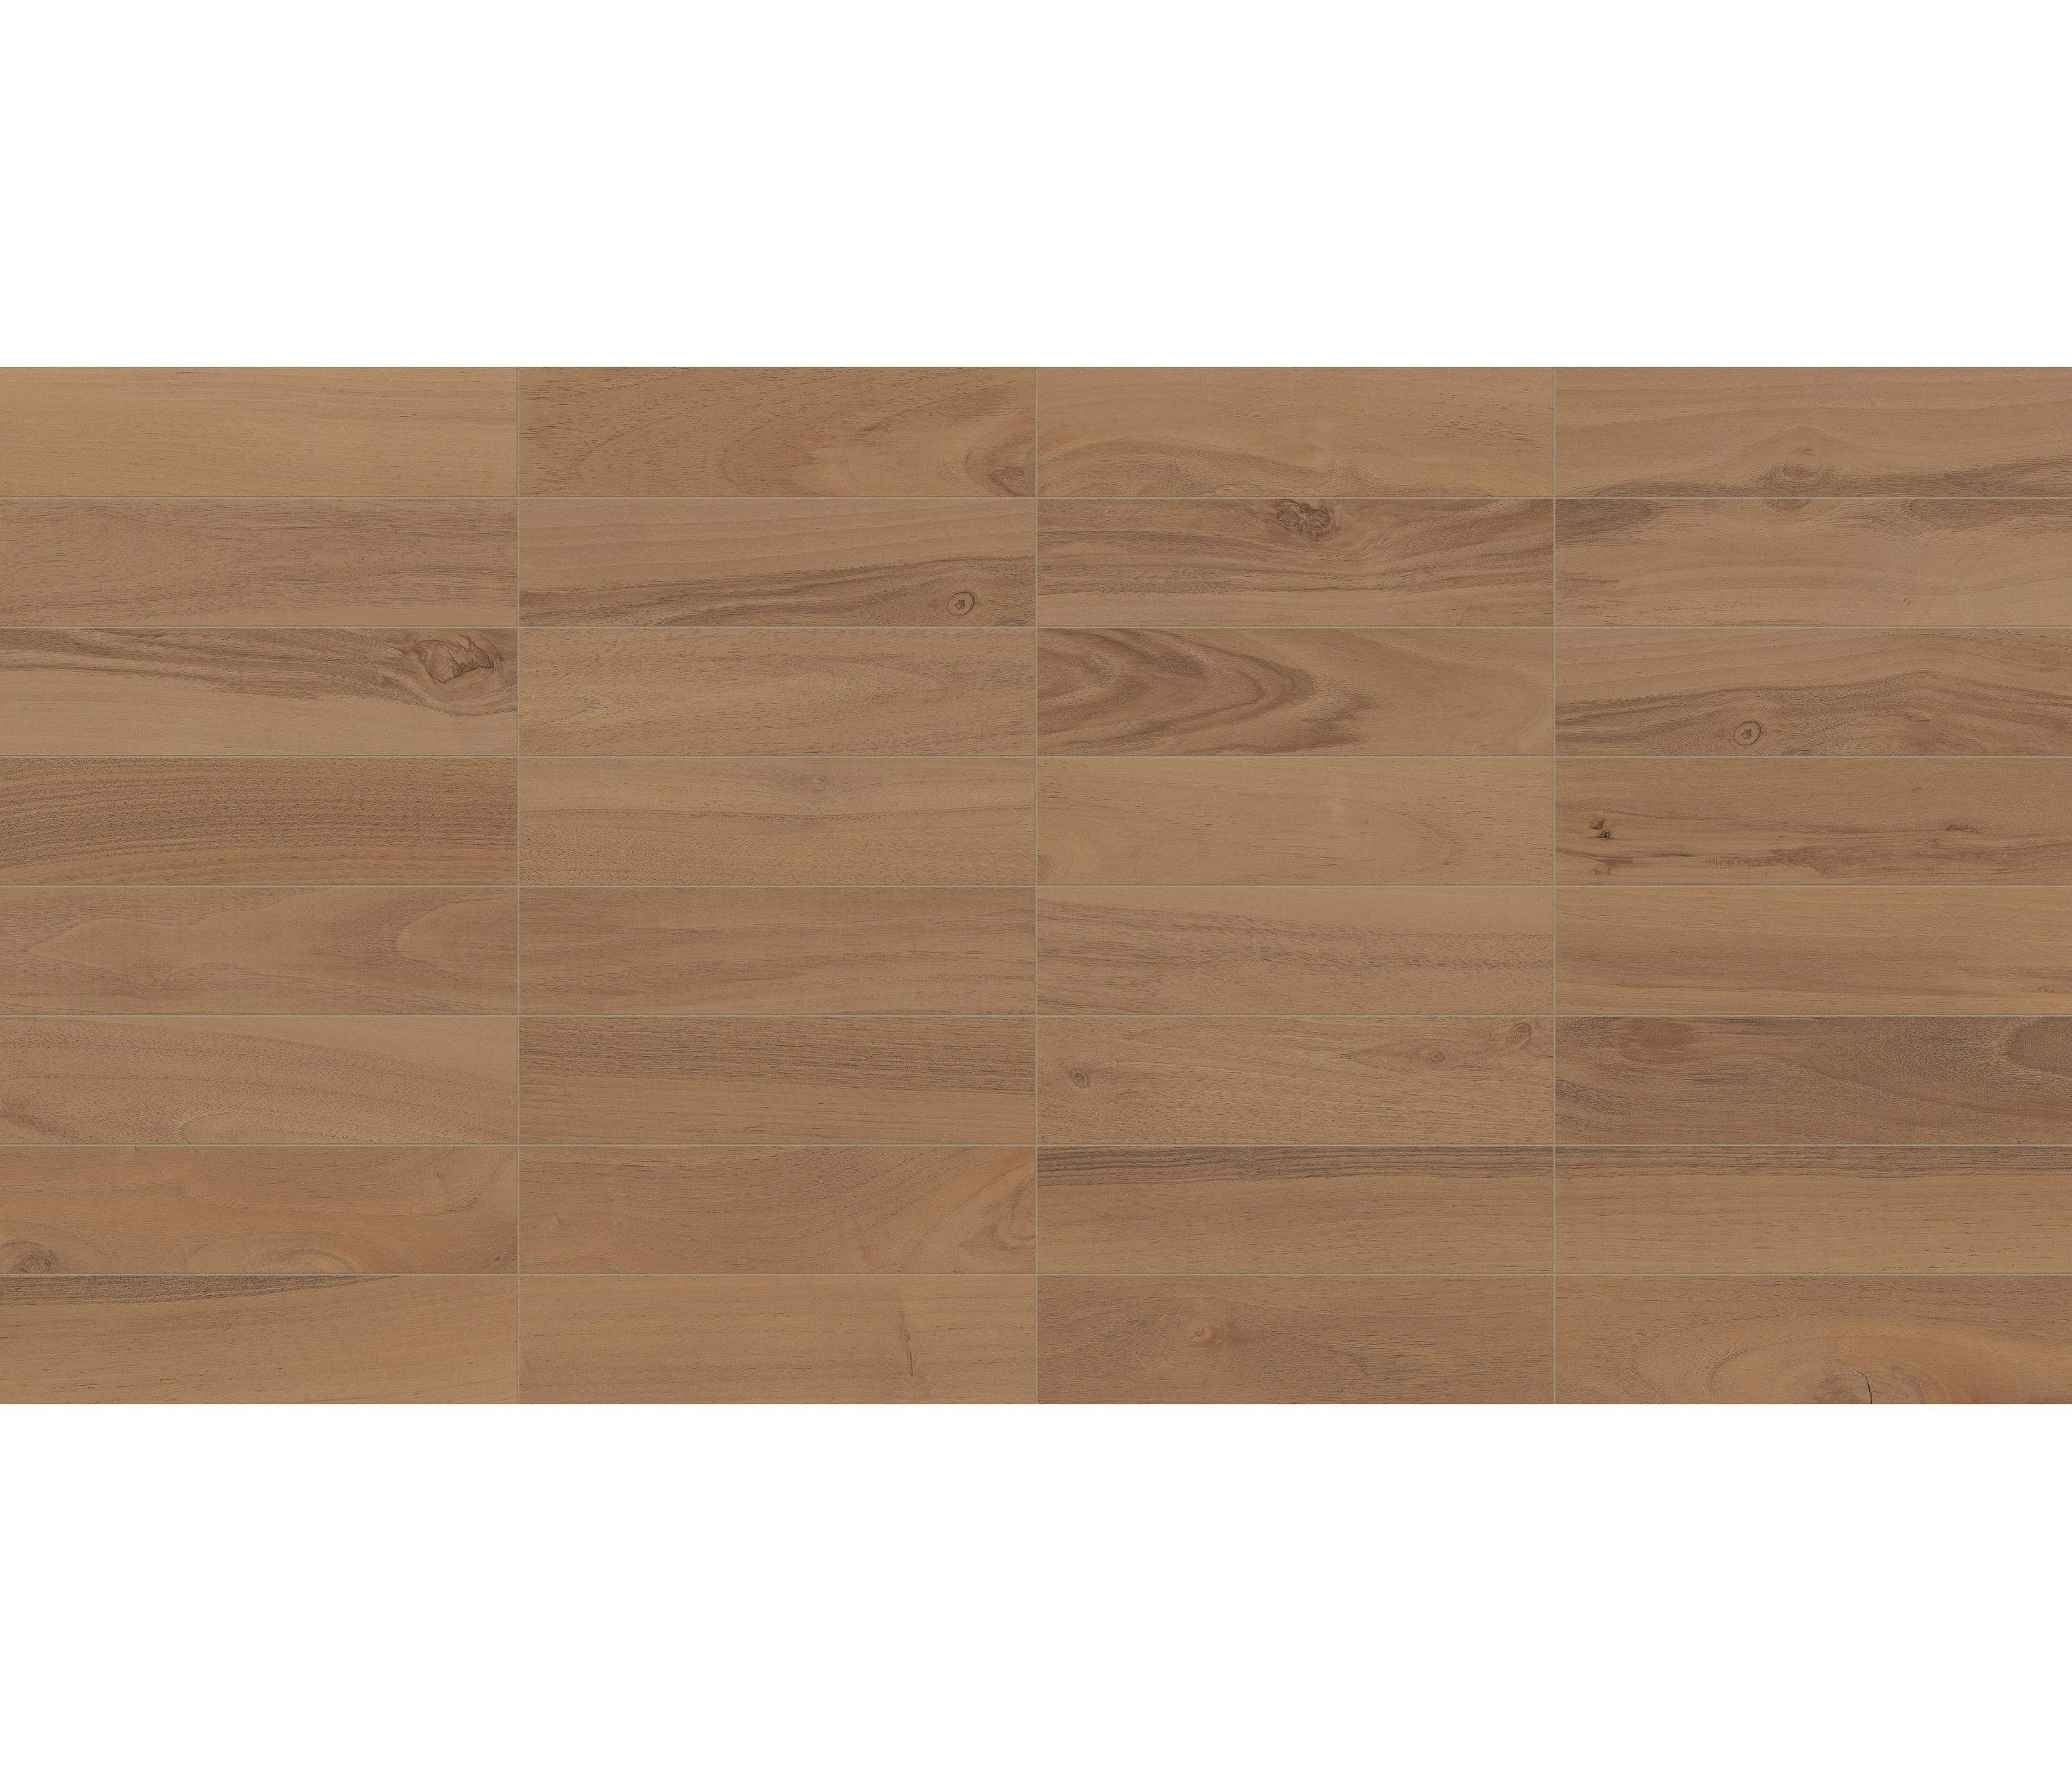 Essences Walnut 75x30 Ceramic Tiles From Marca Corona Architonic